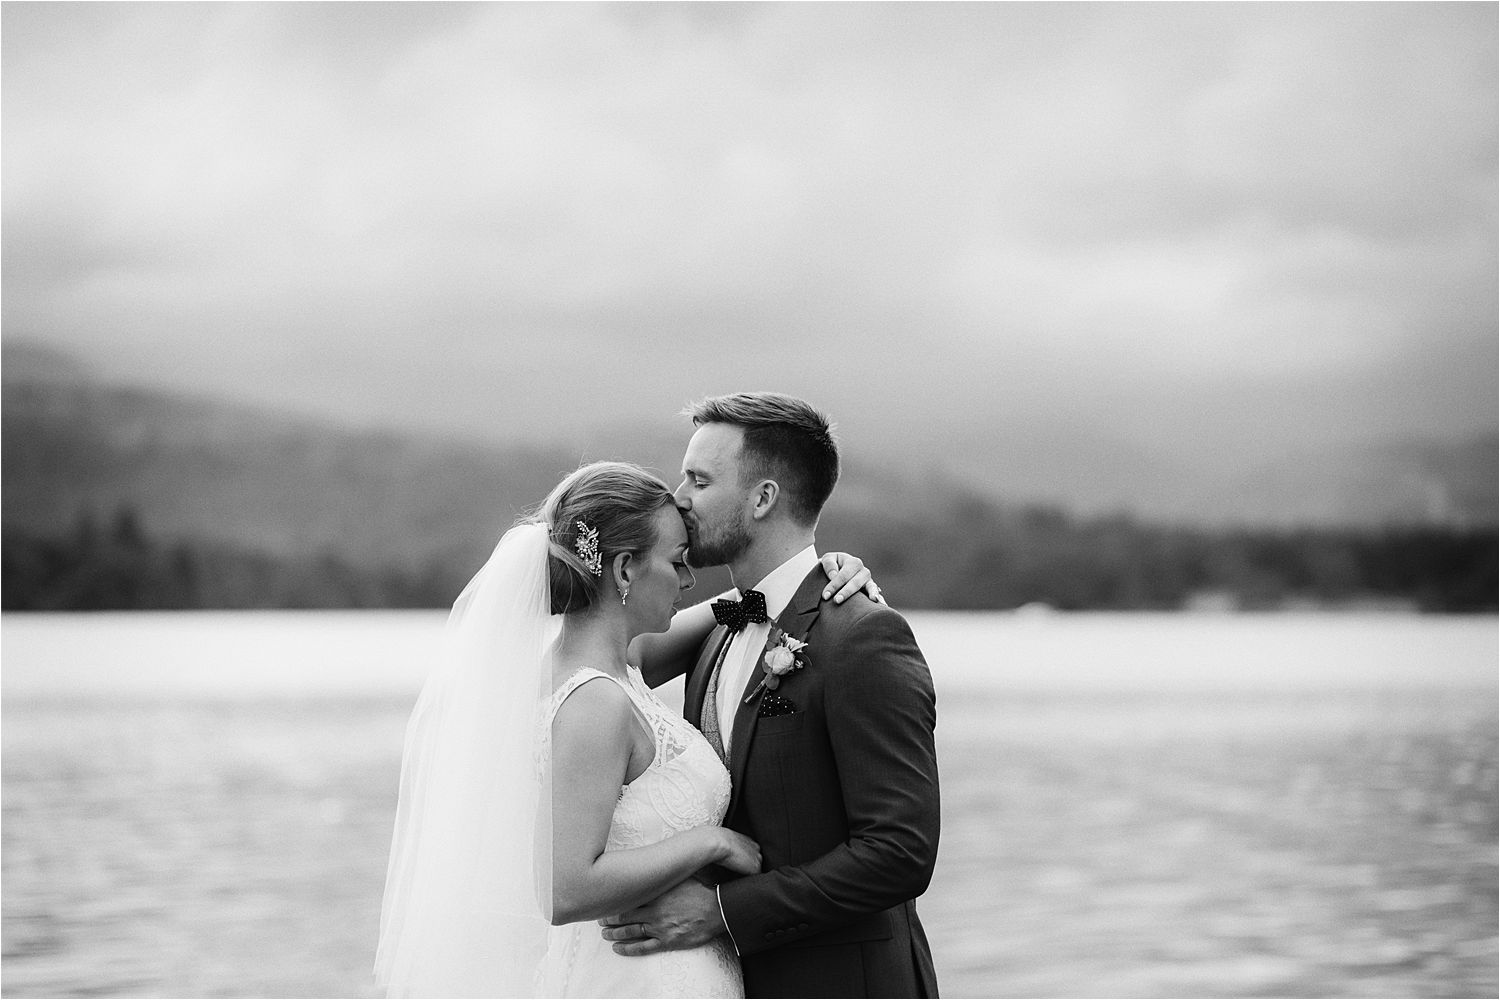 Rainy day Lake District wedding, bride andgroom on board Lake Windermere cruises steamer